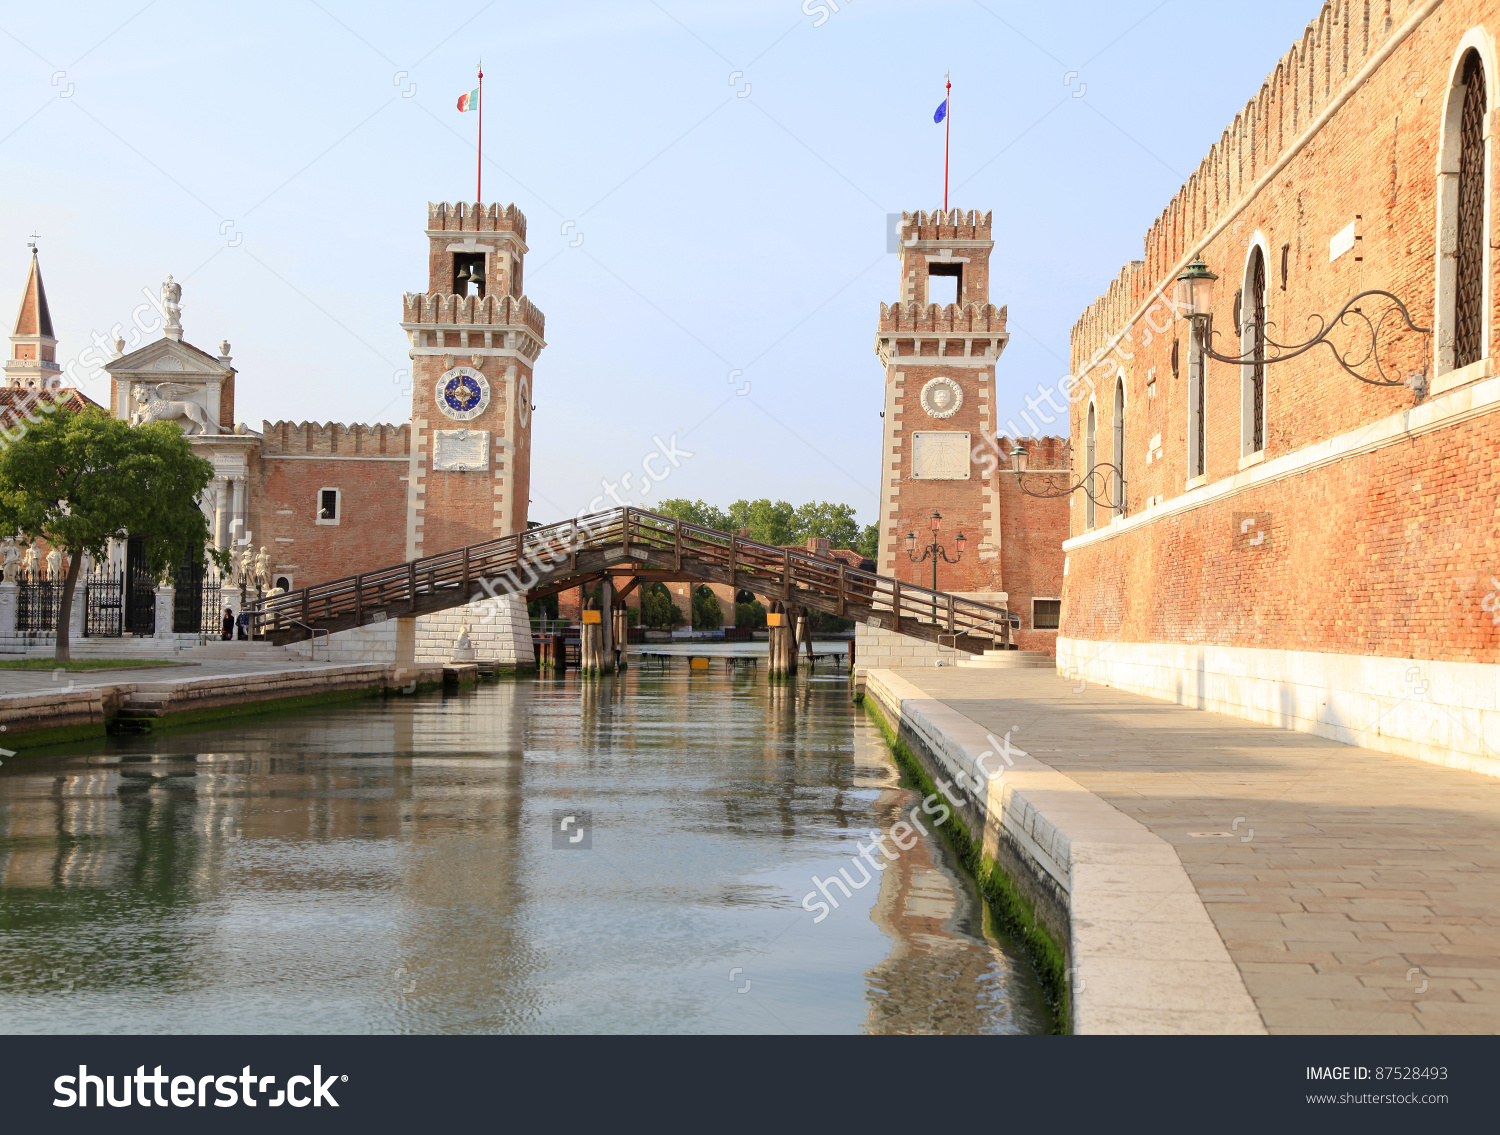 Arsenal Towers In Venice, Italy Stock Photo 87528493 : Shutterstock.